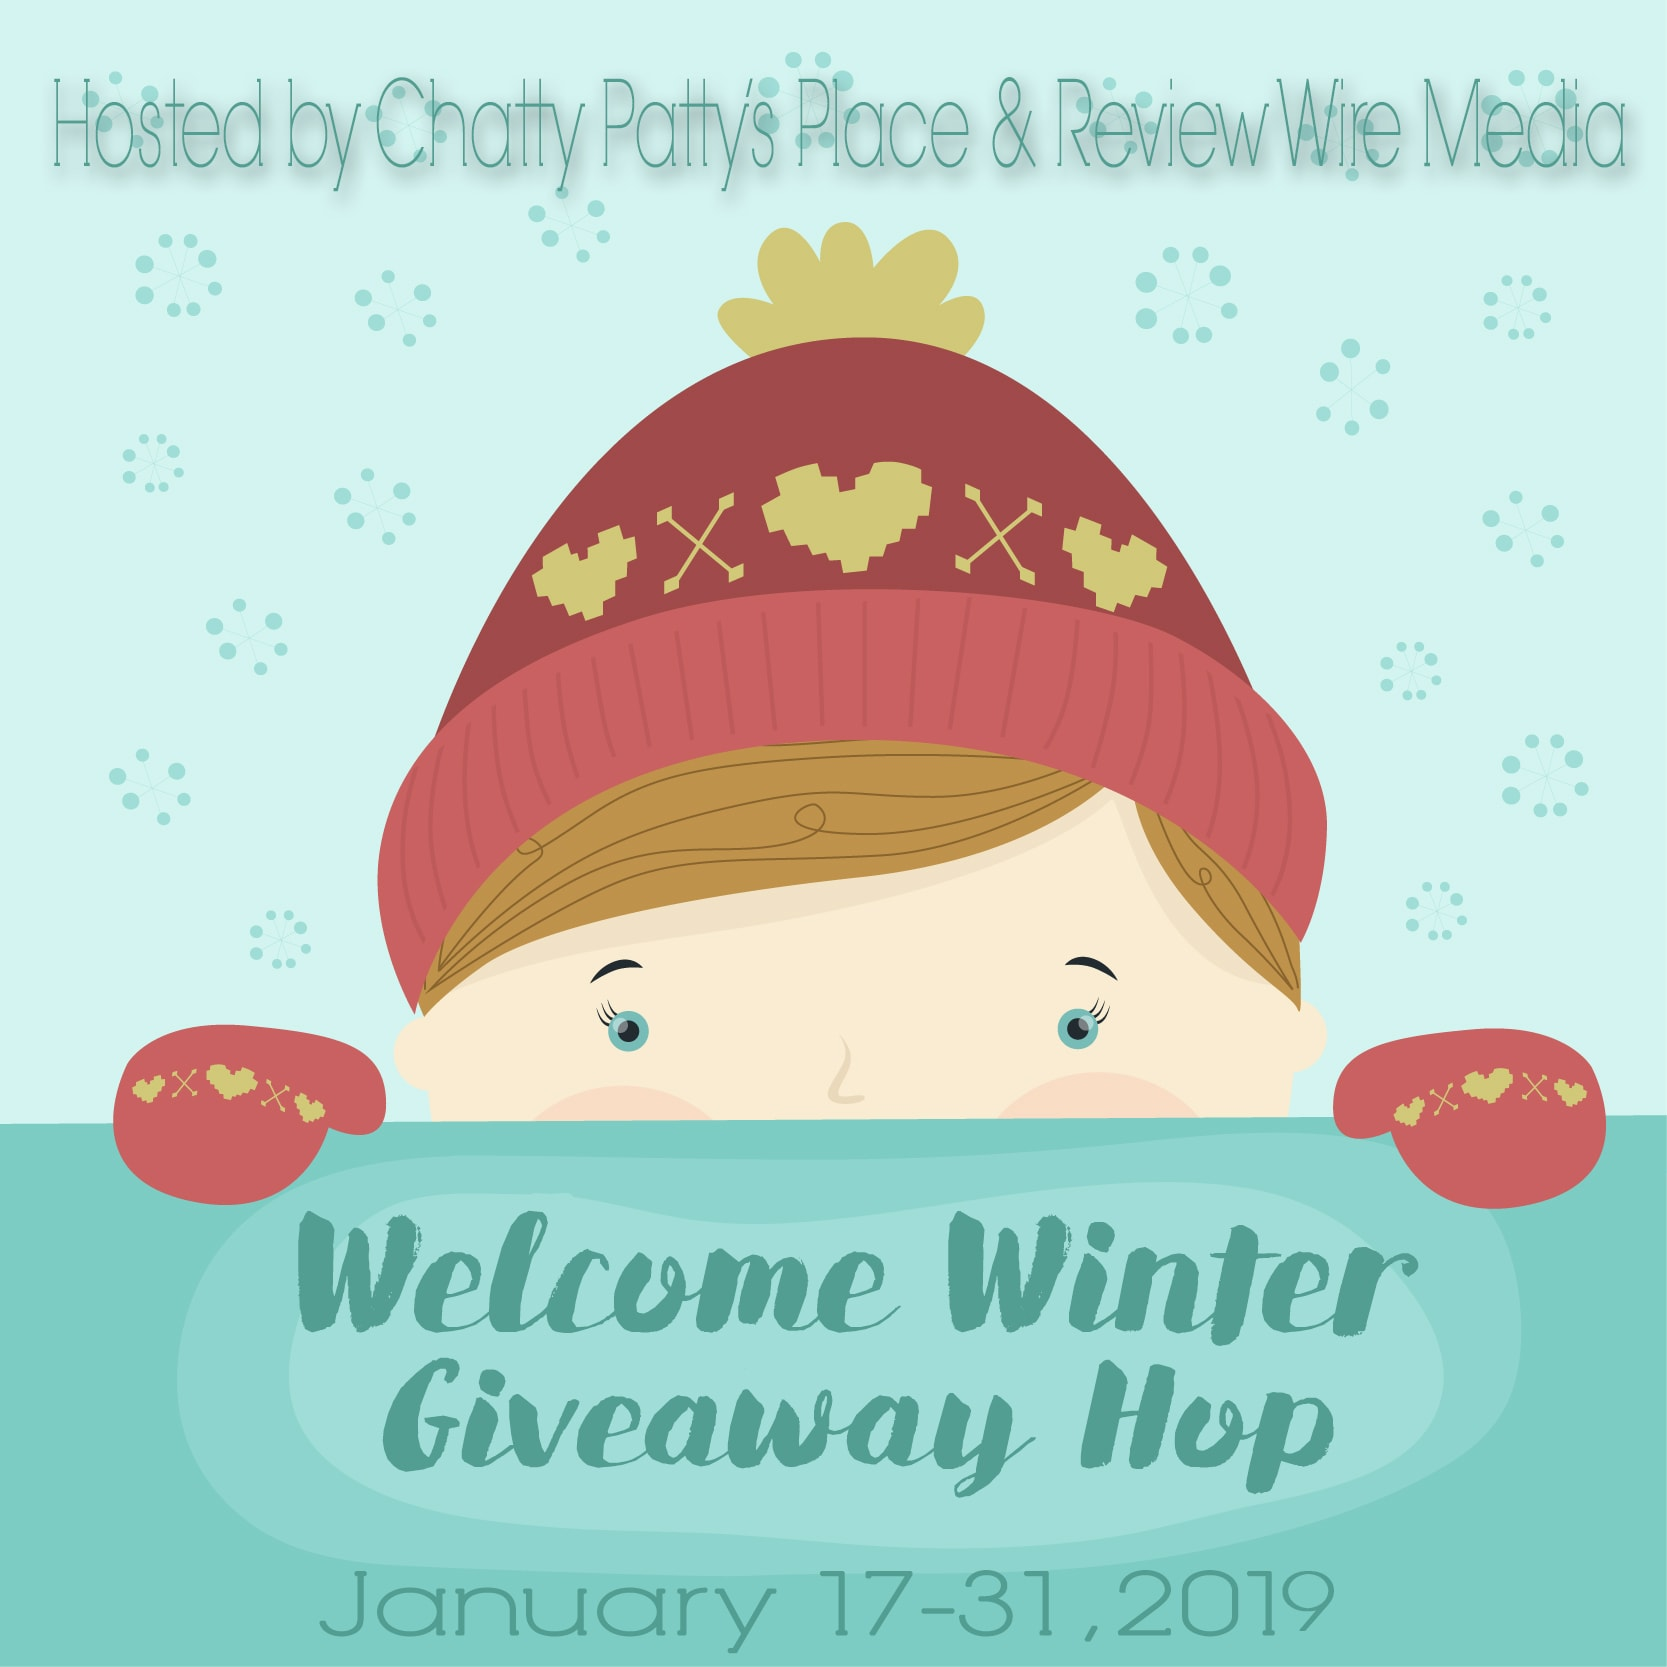 The Review Wire: Welcome Winter Hop 2019